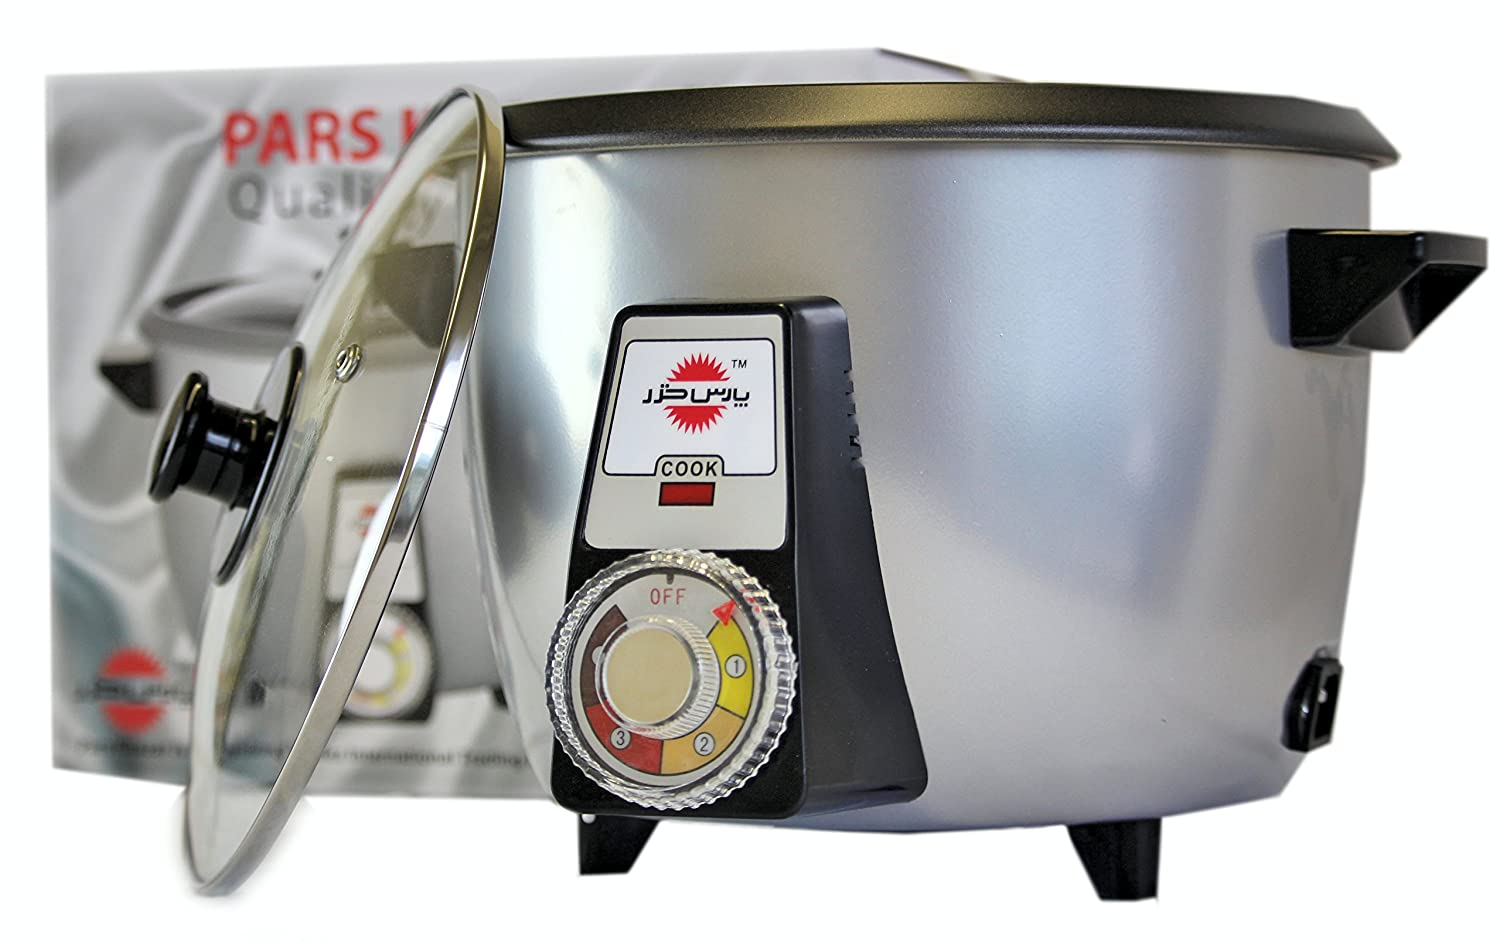 PARS KHAZAR Automatic Persian Rice Cooker 4 Cups